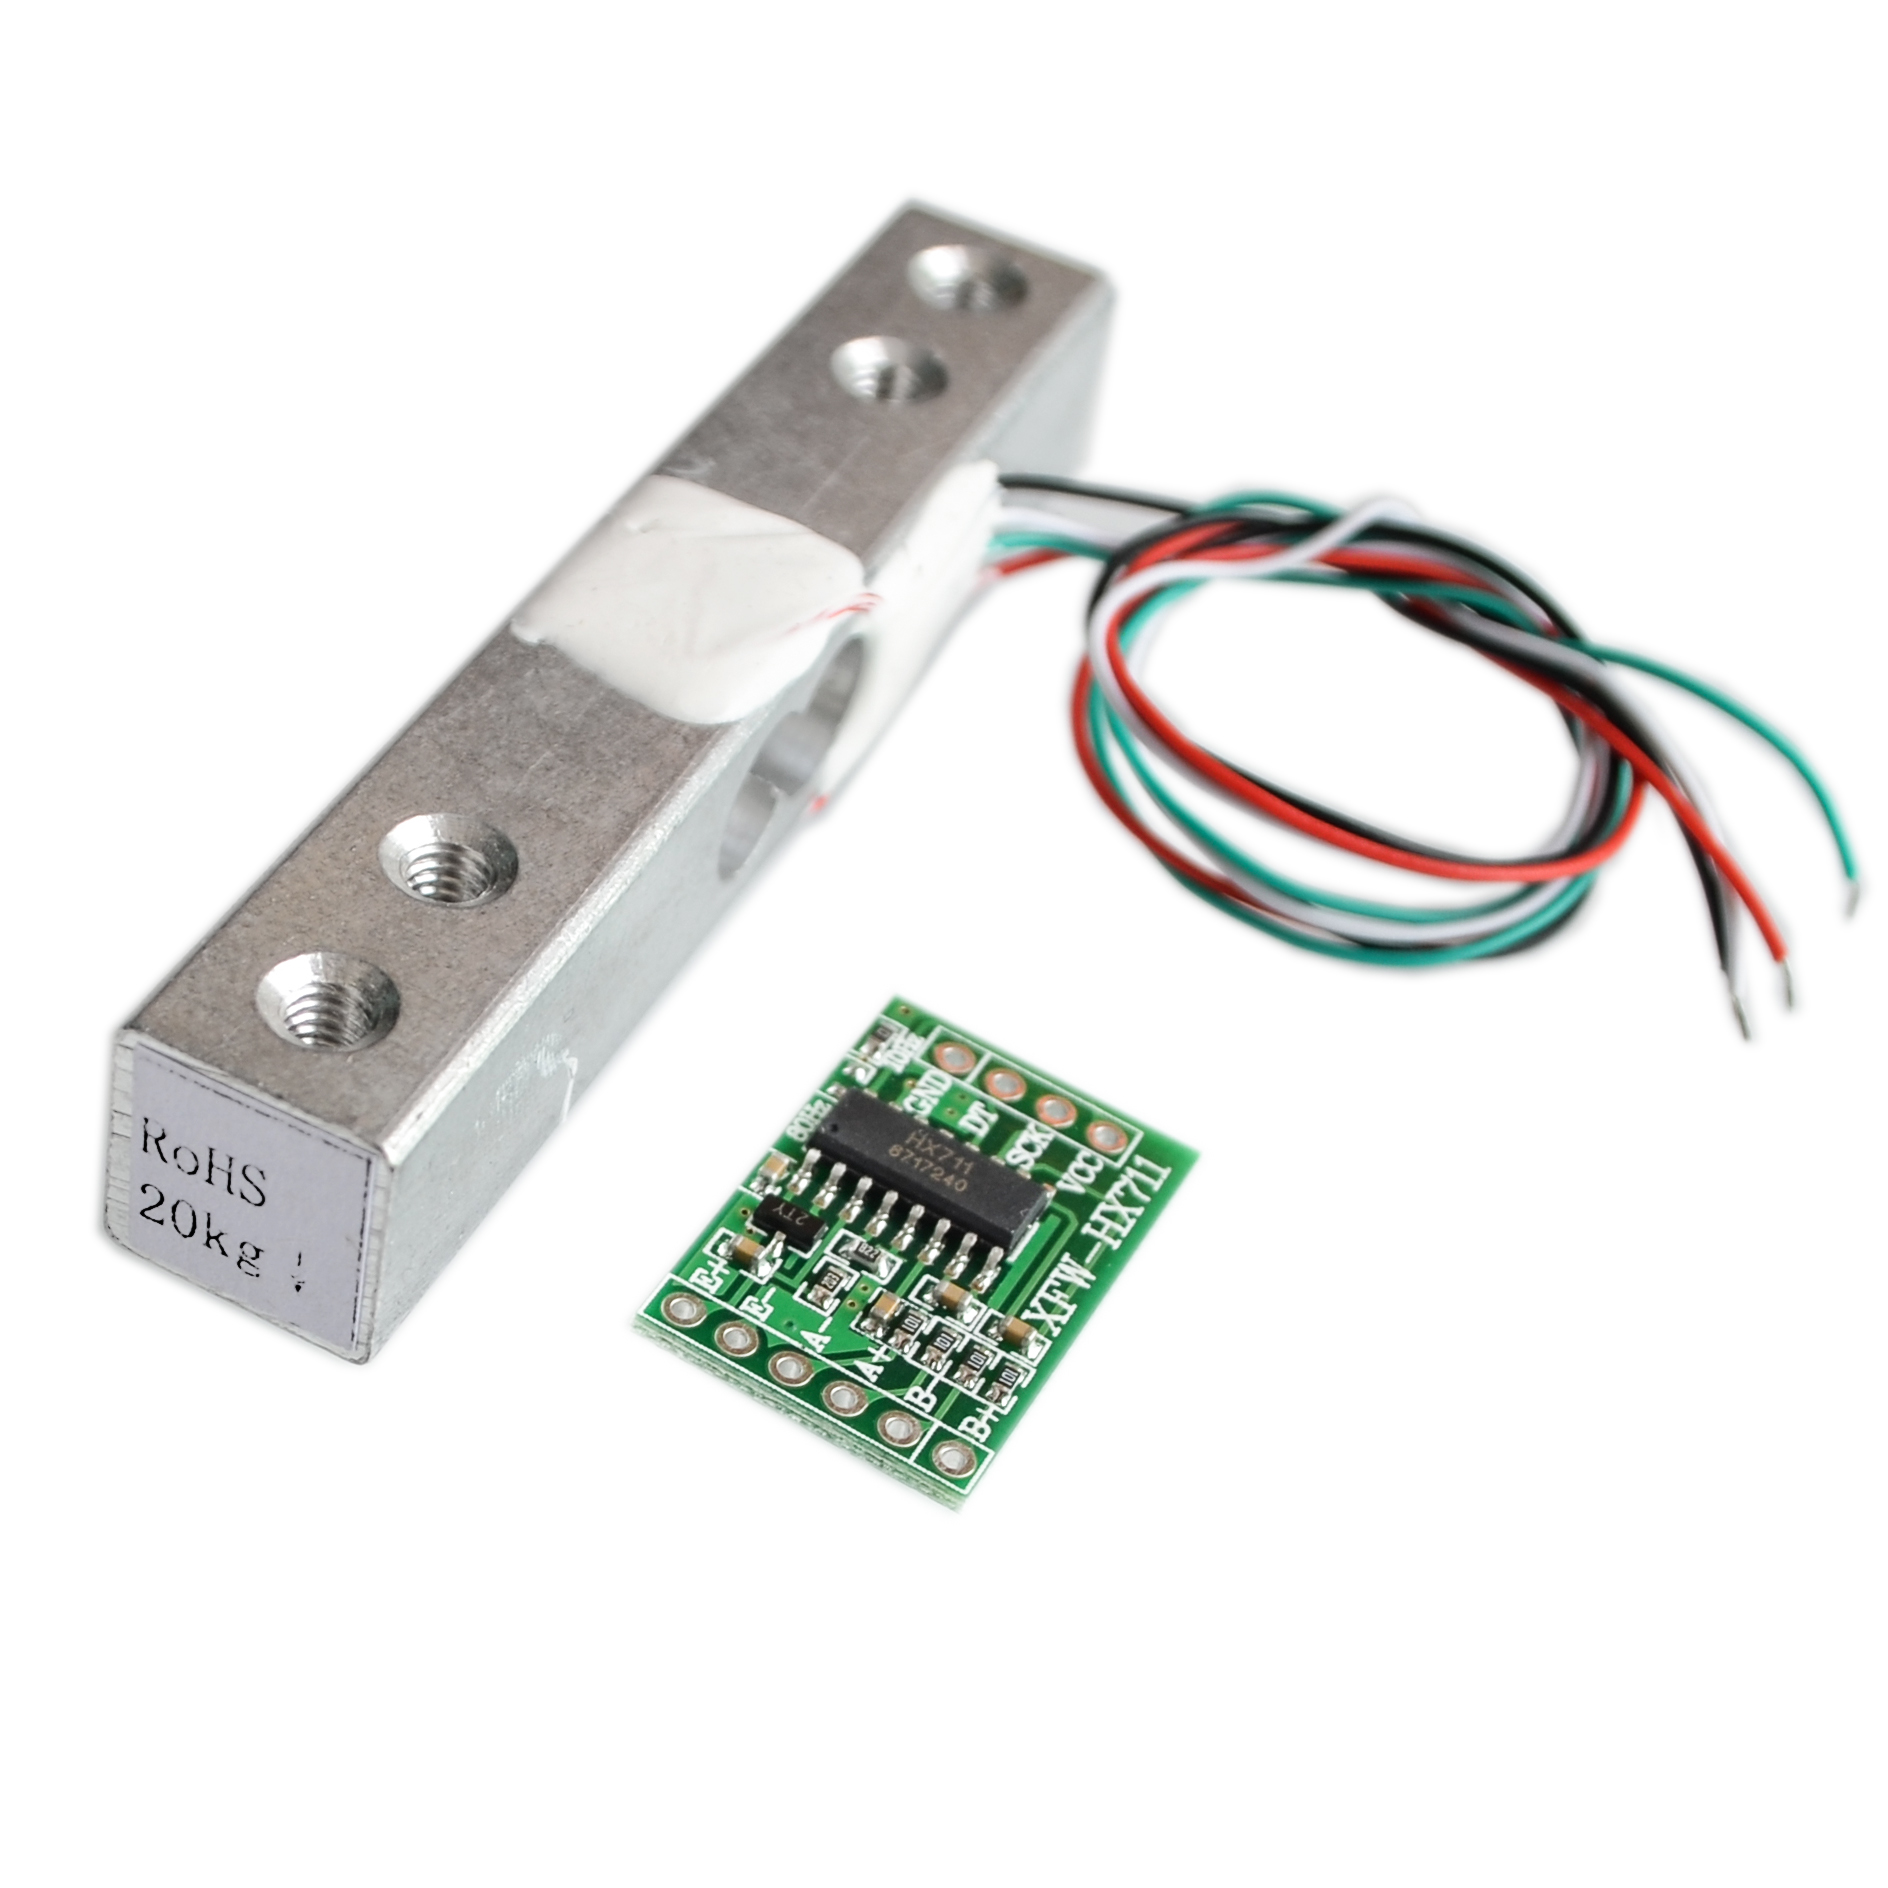 Digital Load Cell Weight Sensor 20KG Portable Electronic Kitchen Scale + HX711 Weighing Sensors Ad Module for Arduino electronic component